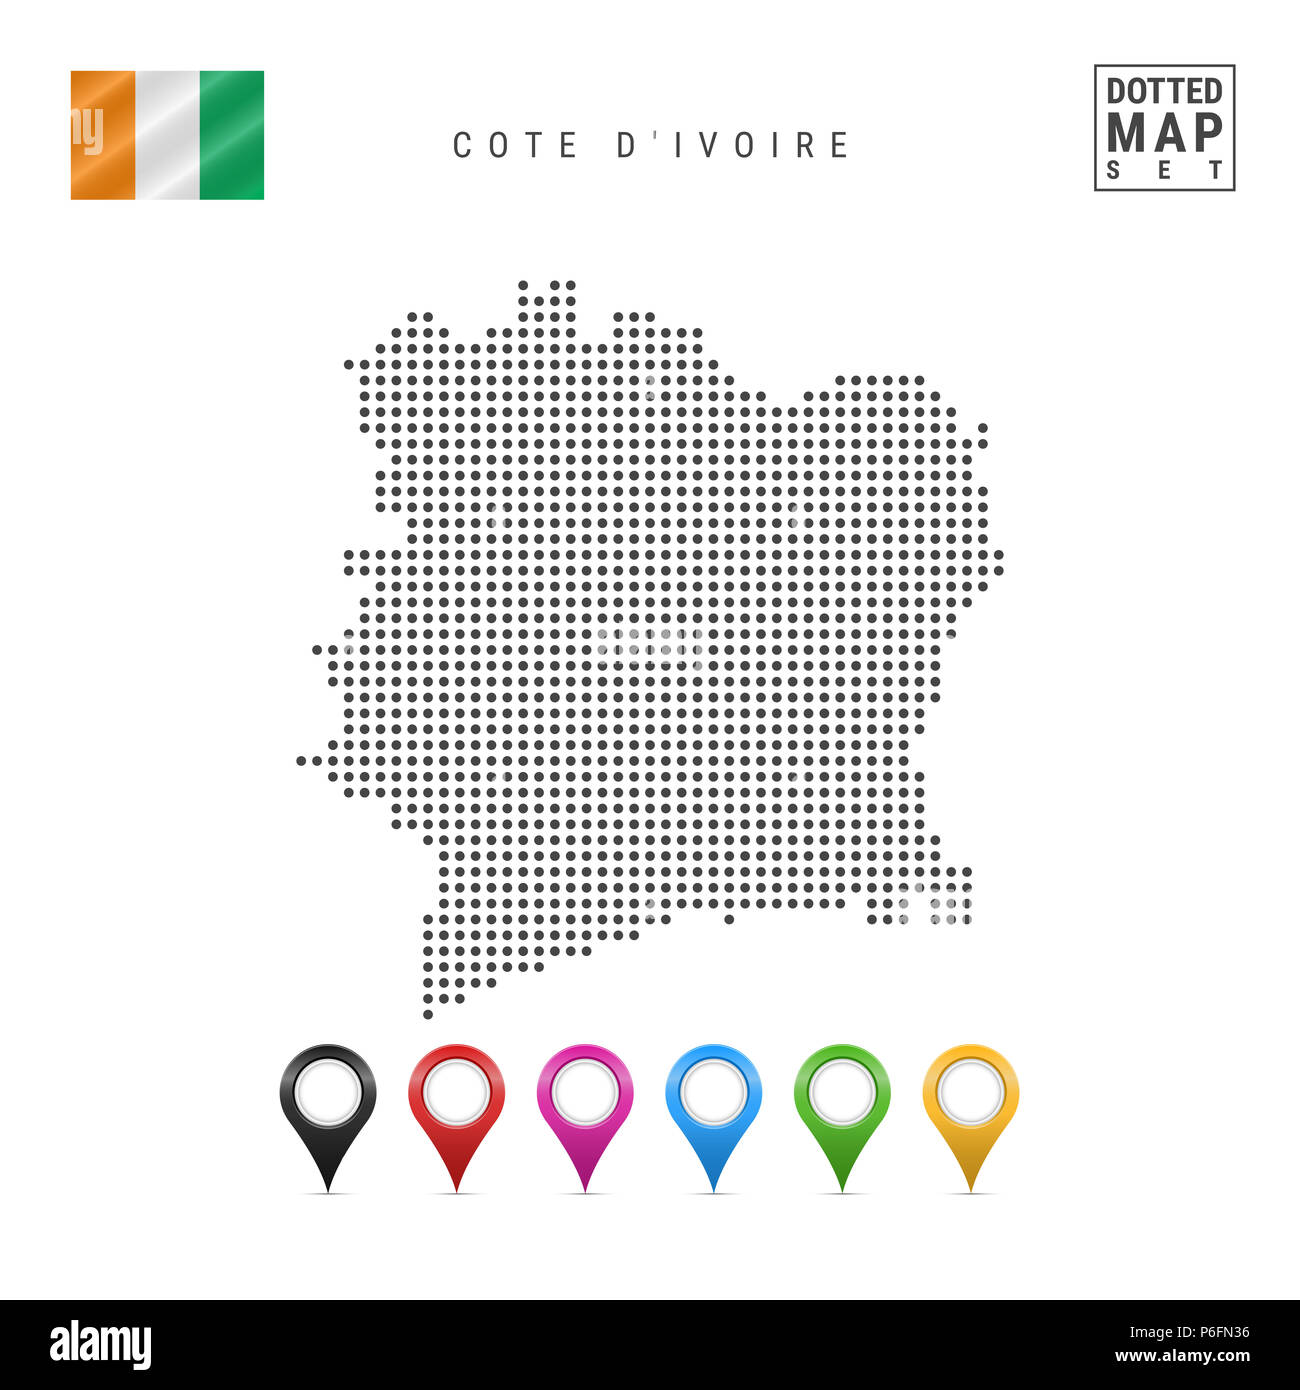 Dotted Map of Cote D'Ivoire. Simple Silhouette of Cote D'Ivoire. The National Flag of Cote D'Ivoire. Set of Multicolored Map Markers. Illustration Iso - Stock Image